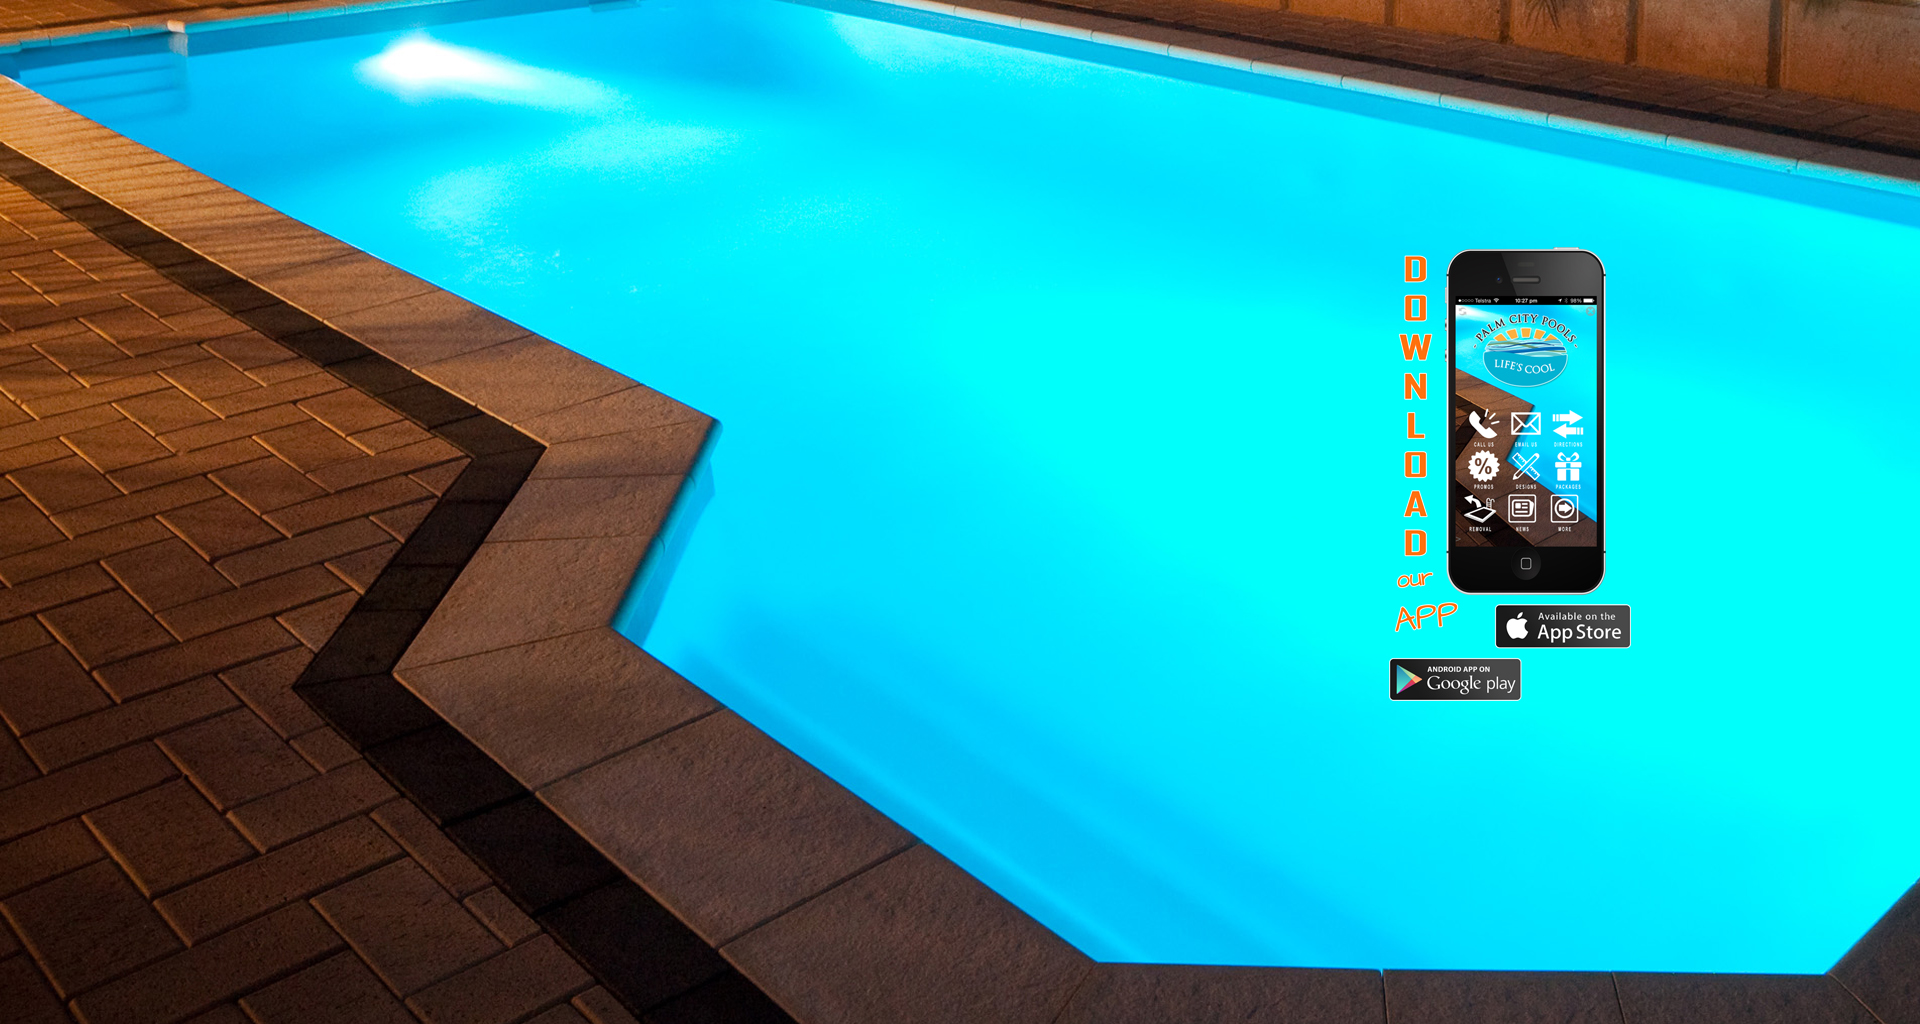 Palm City Pools App Image5